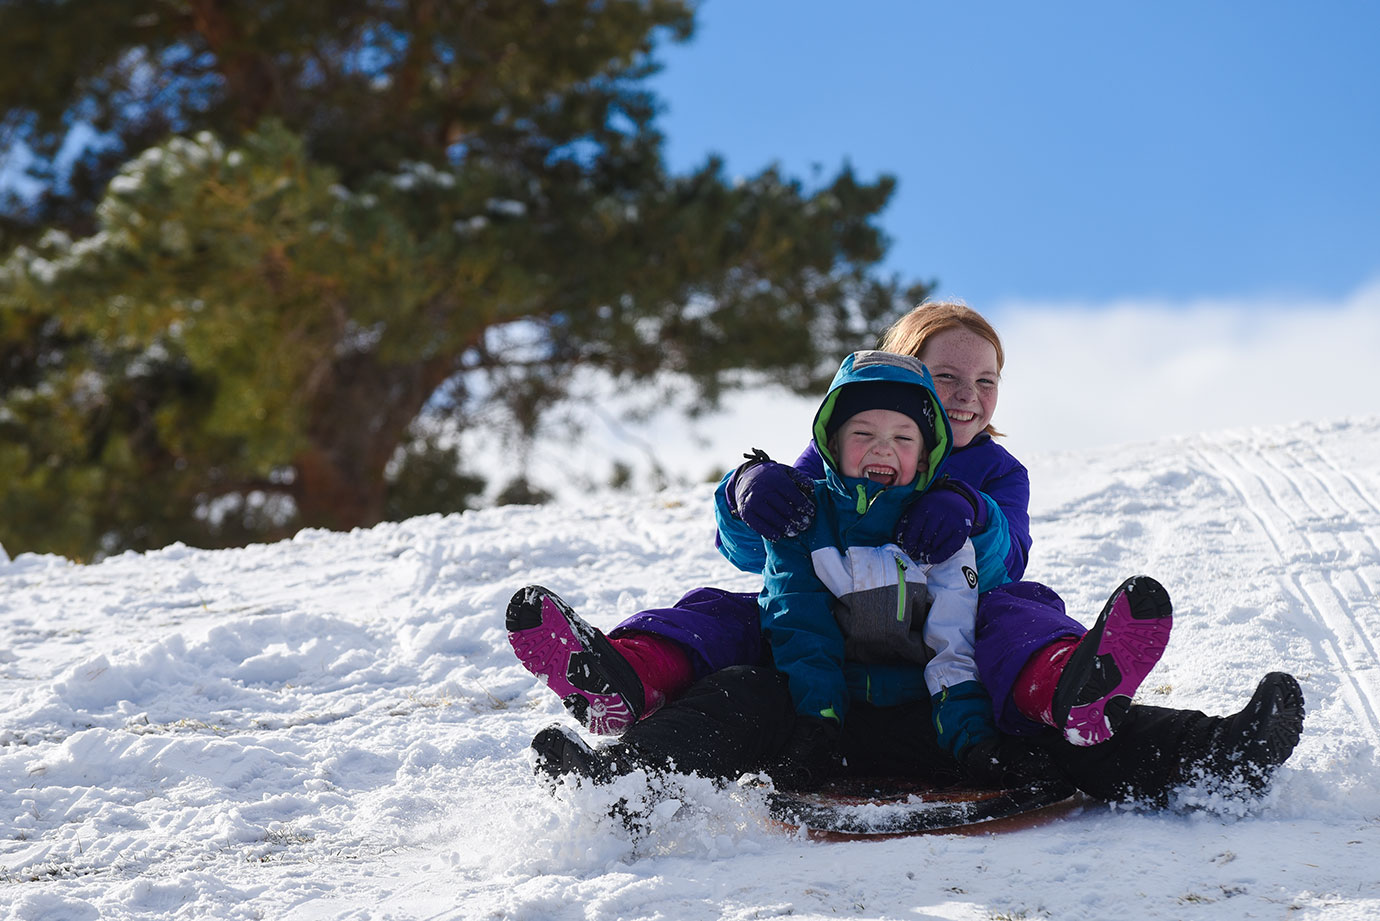 Kids sledding down a snowy hill